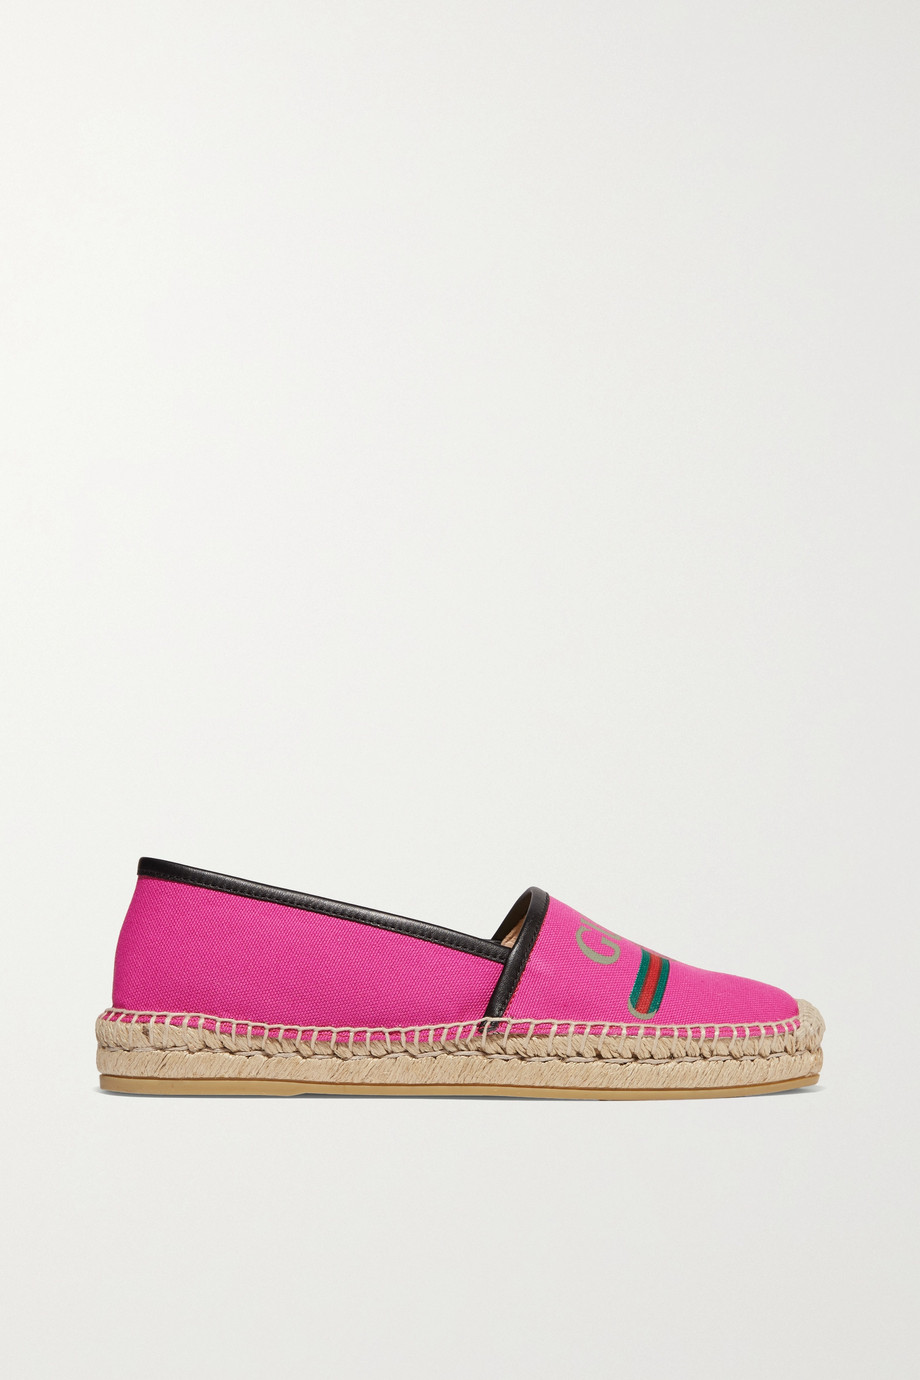 Gucci Leather-trimmed logo-print canvas espadrilles